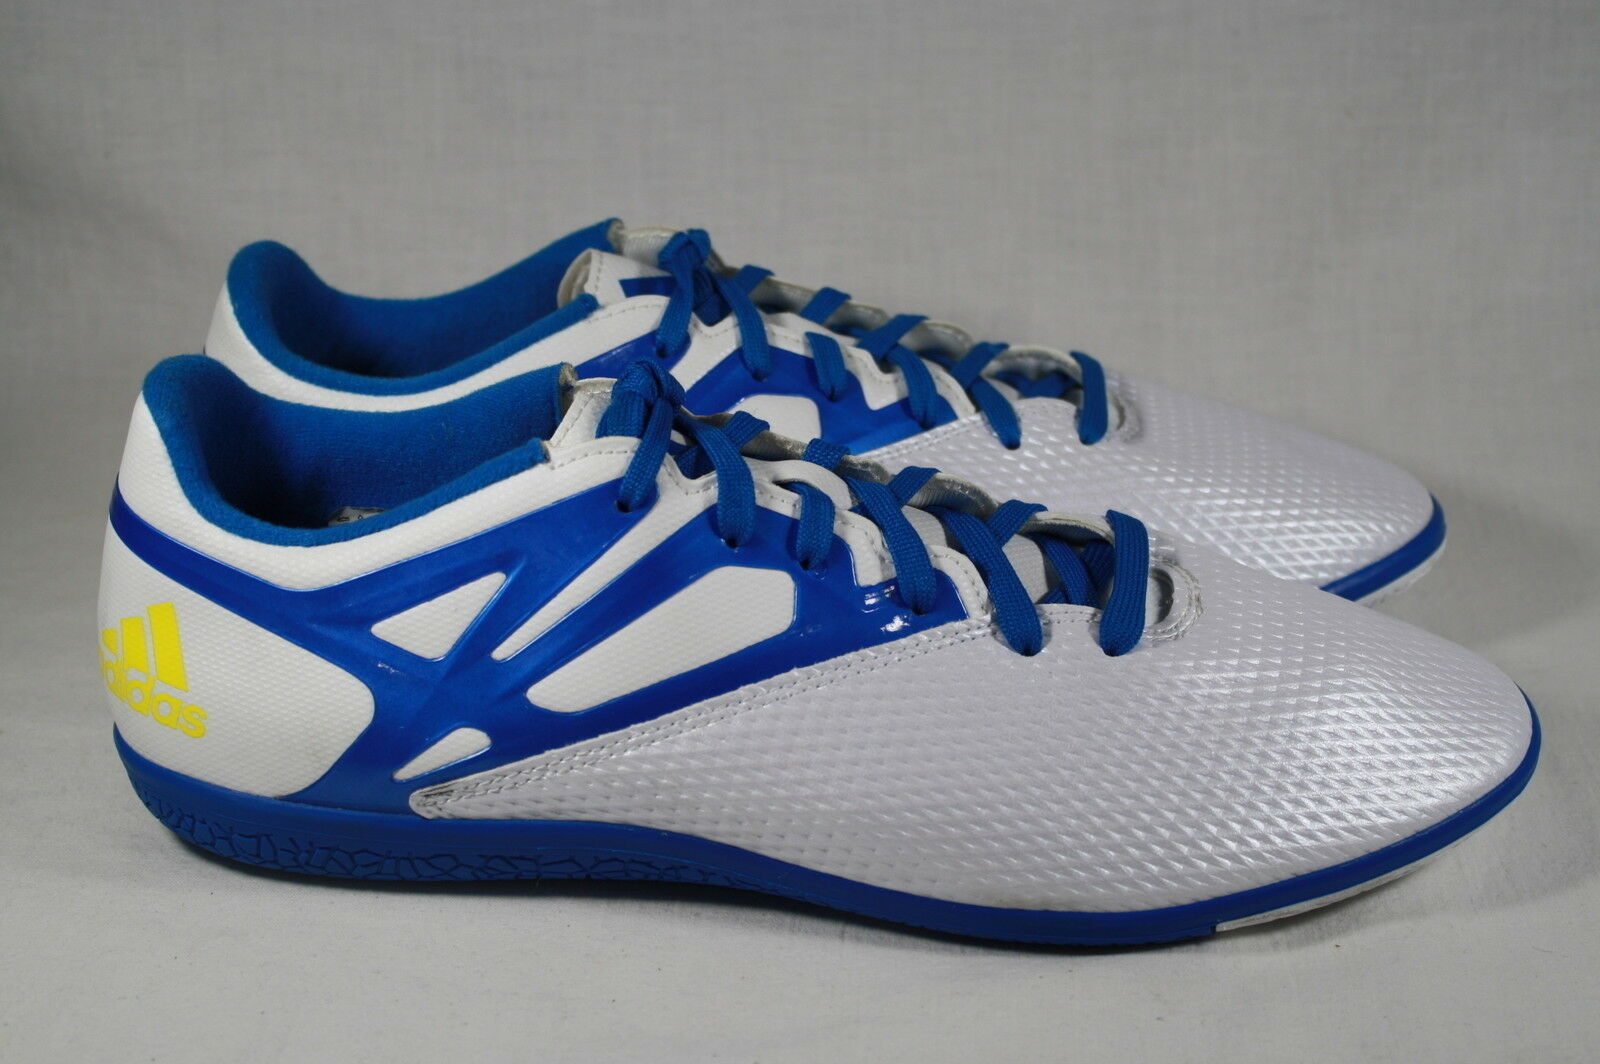 MENS ADIDAS MESSI 15.3 SHOES - SEE LISTING FOR SIZE AND COLOR (2098)